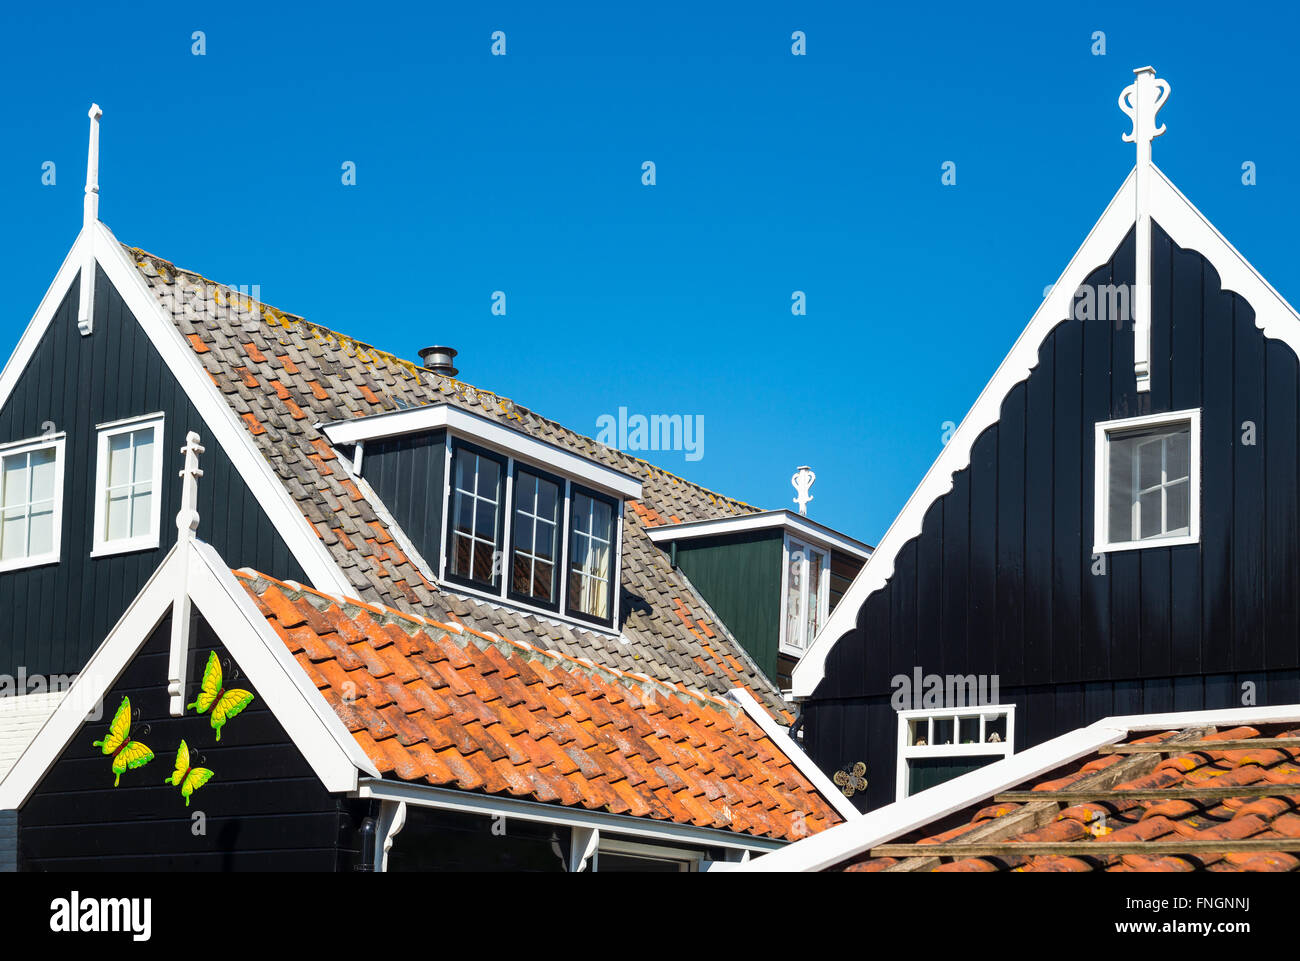 Amsterdam, Waterland district, Marken, view of the traditional house of the village - Stock Image